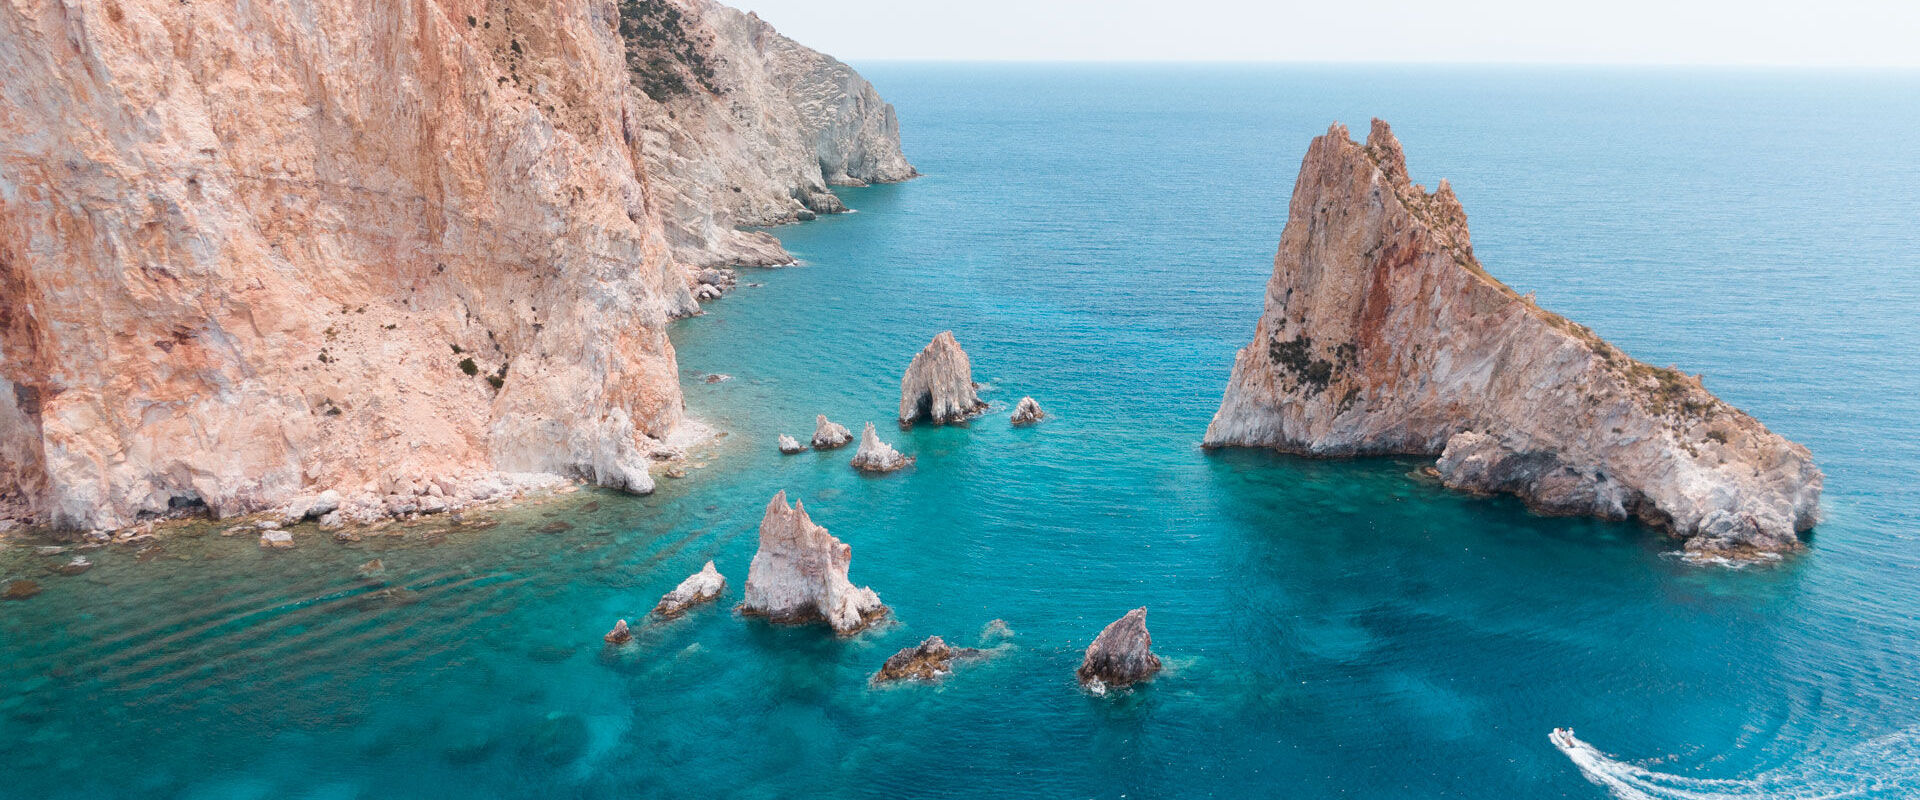 Polyegos, not just a virgin landscape of pristine beaches, but an escape for rare and protected wildlife, just off Milos